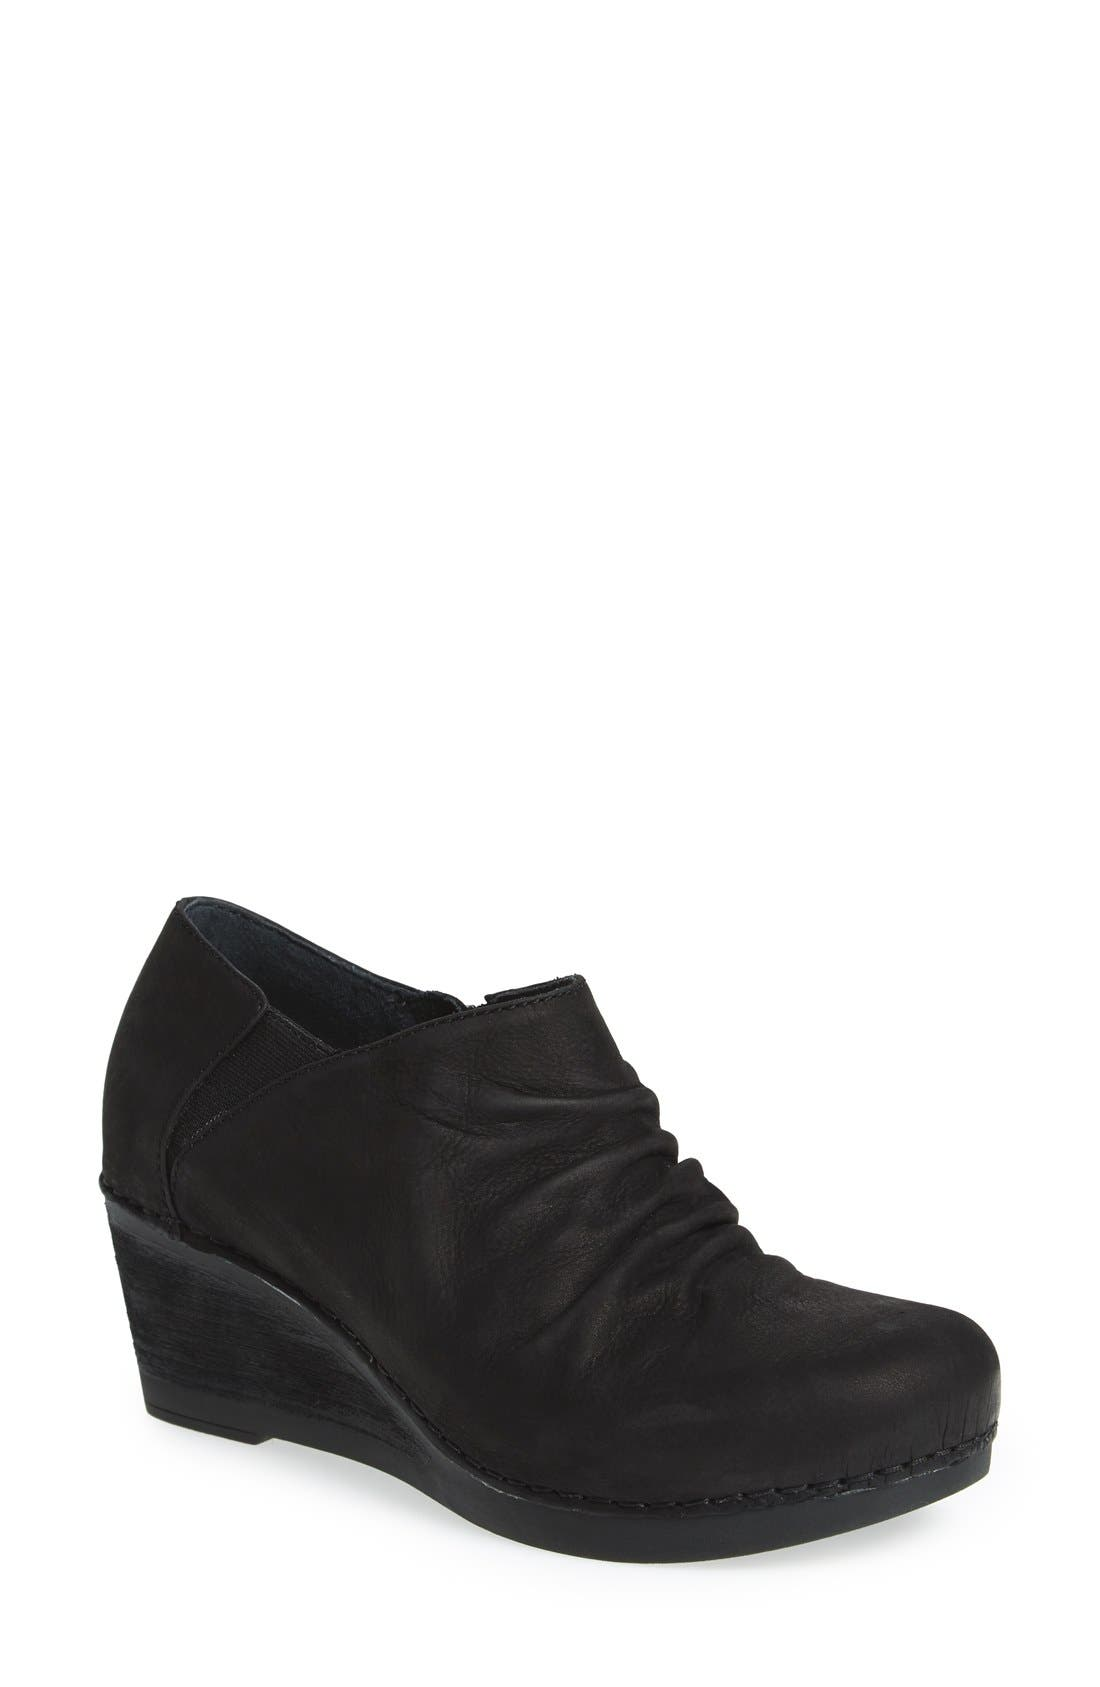 'Sheena' Slouchy Wedge Bootie,                         Main,                         color, Black Nubuck Leather